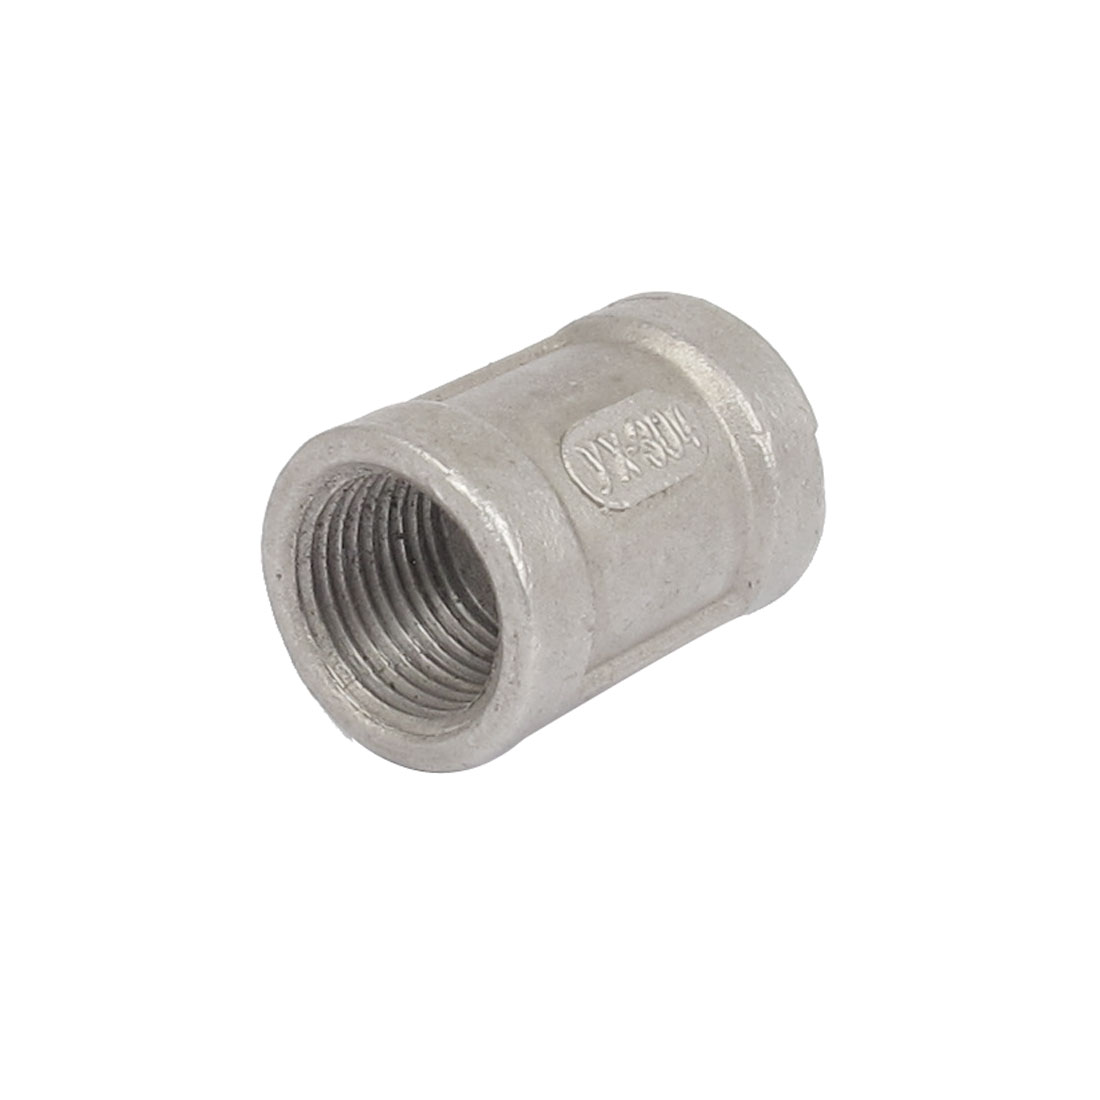 3/8BSP Female Threaded 304 Stainless Steel Pipe Coupling Fitting Connector